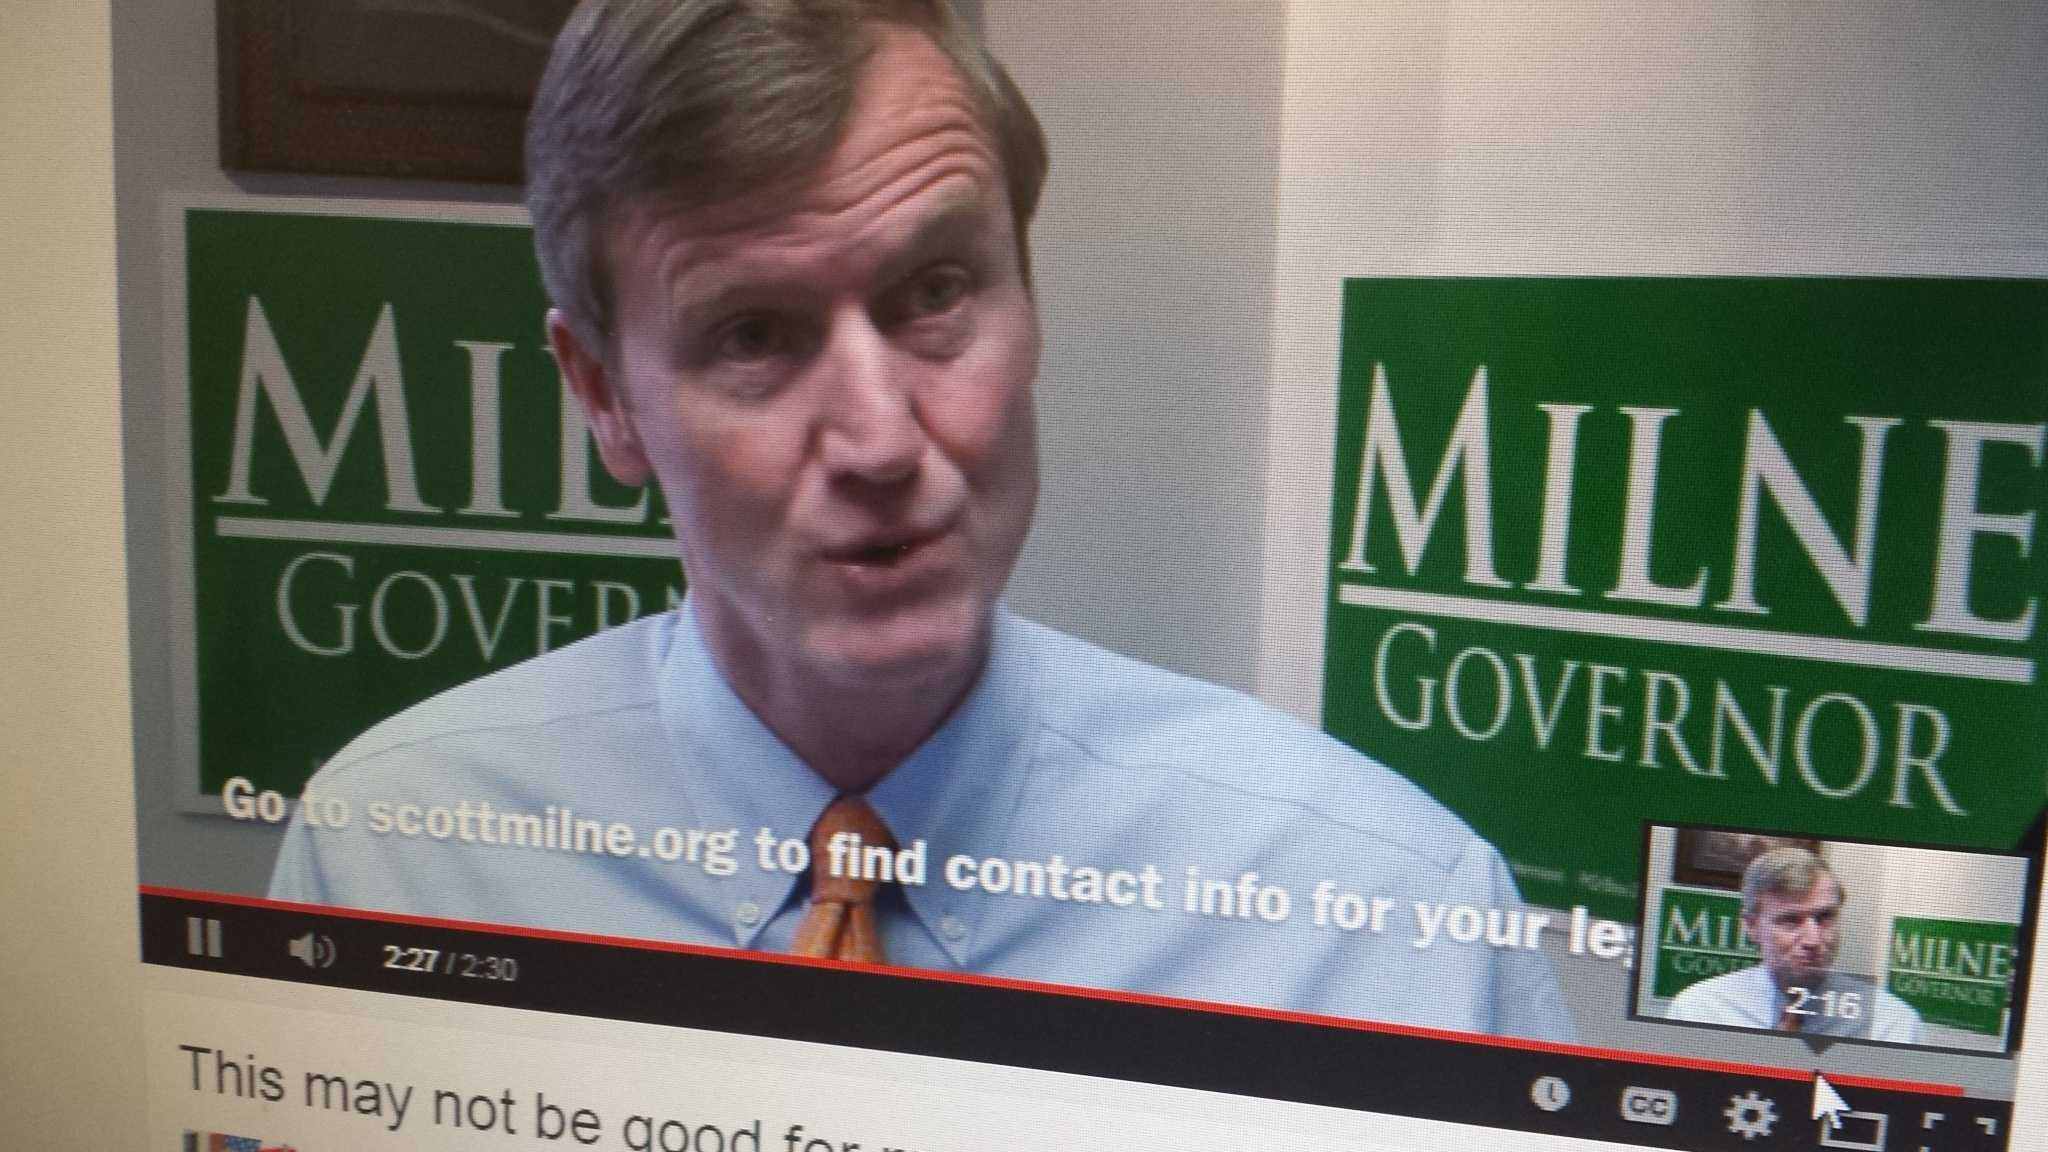 On social media, Scott Milne appeals for support ahead of Thursday's Statehouse election for governor.